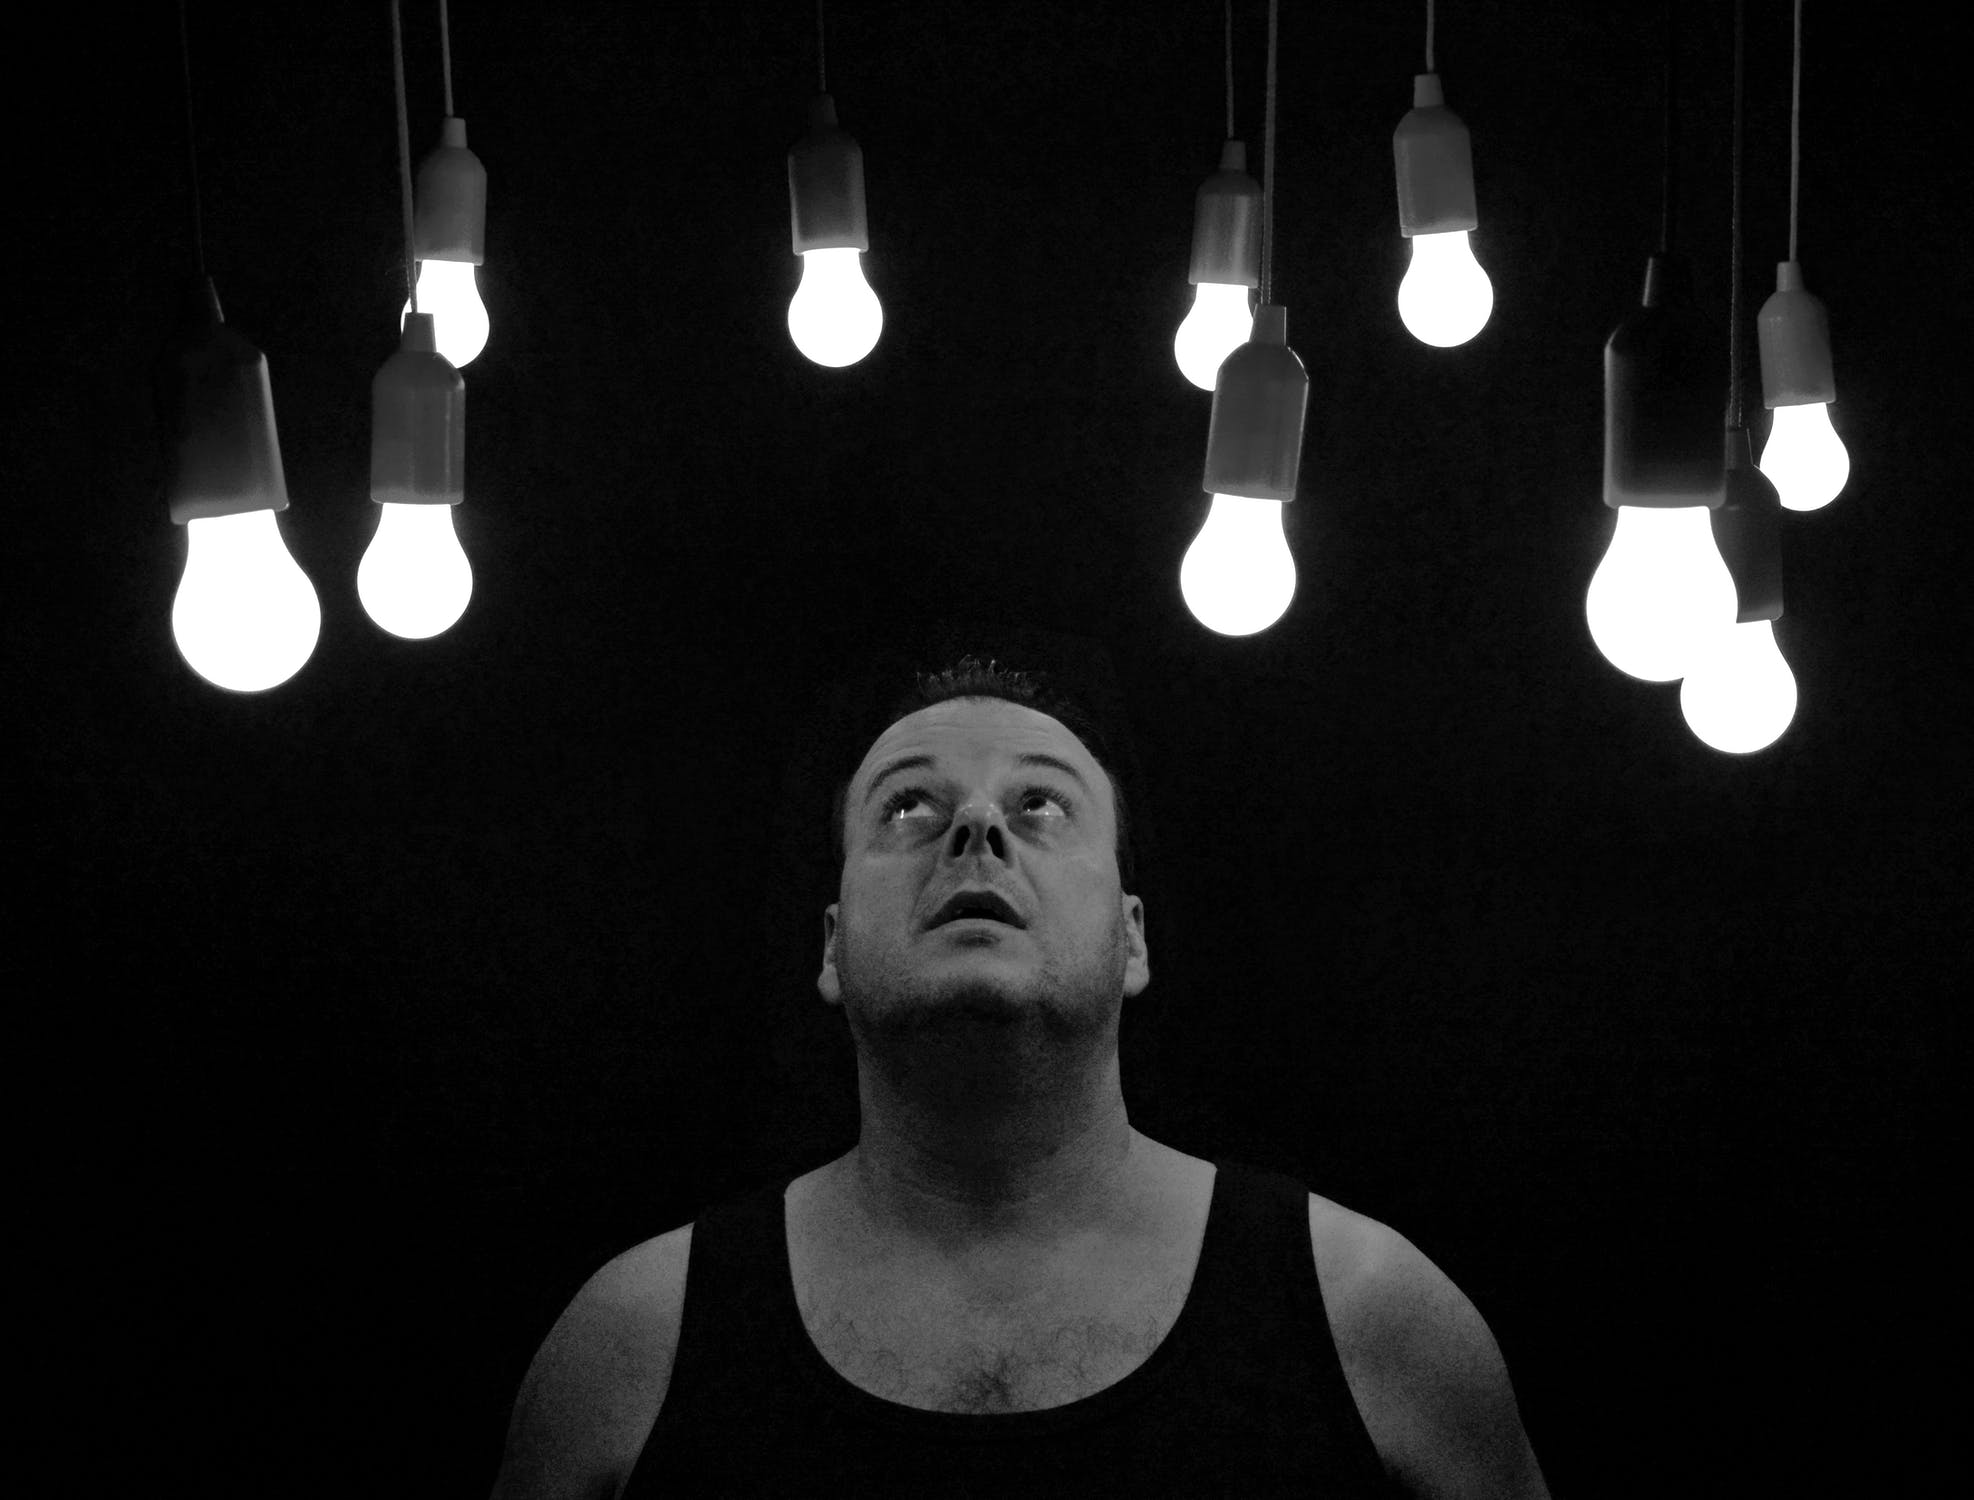 man looks at light bulbs